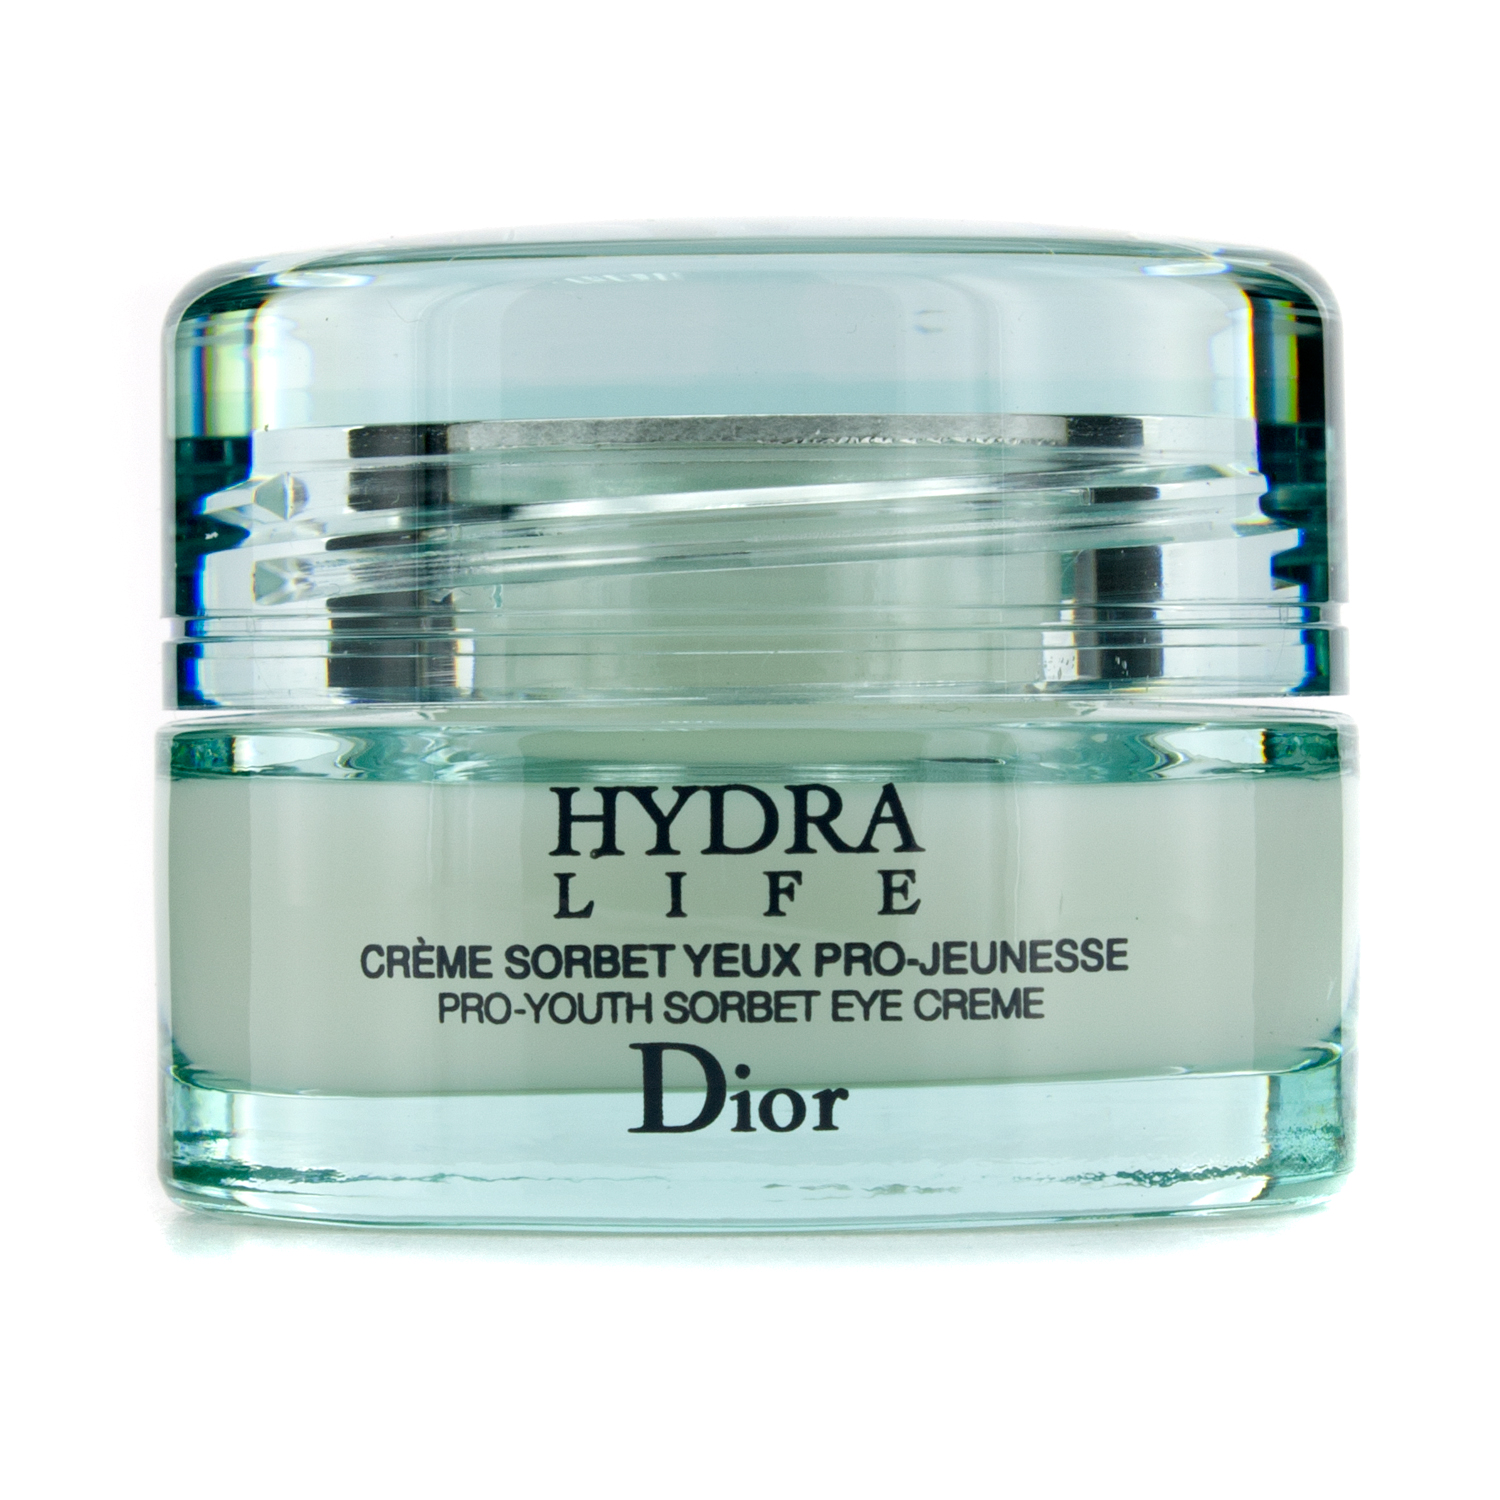 dior hydra life pro youthorbet eye creme